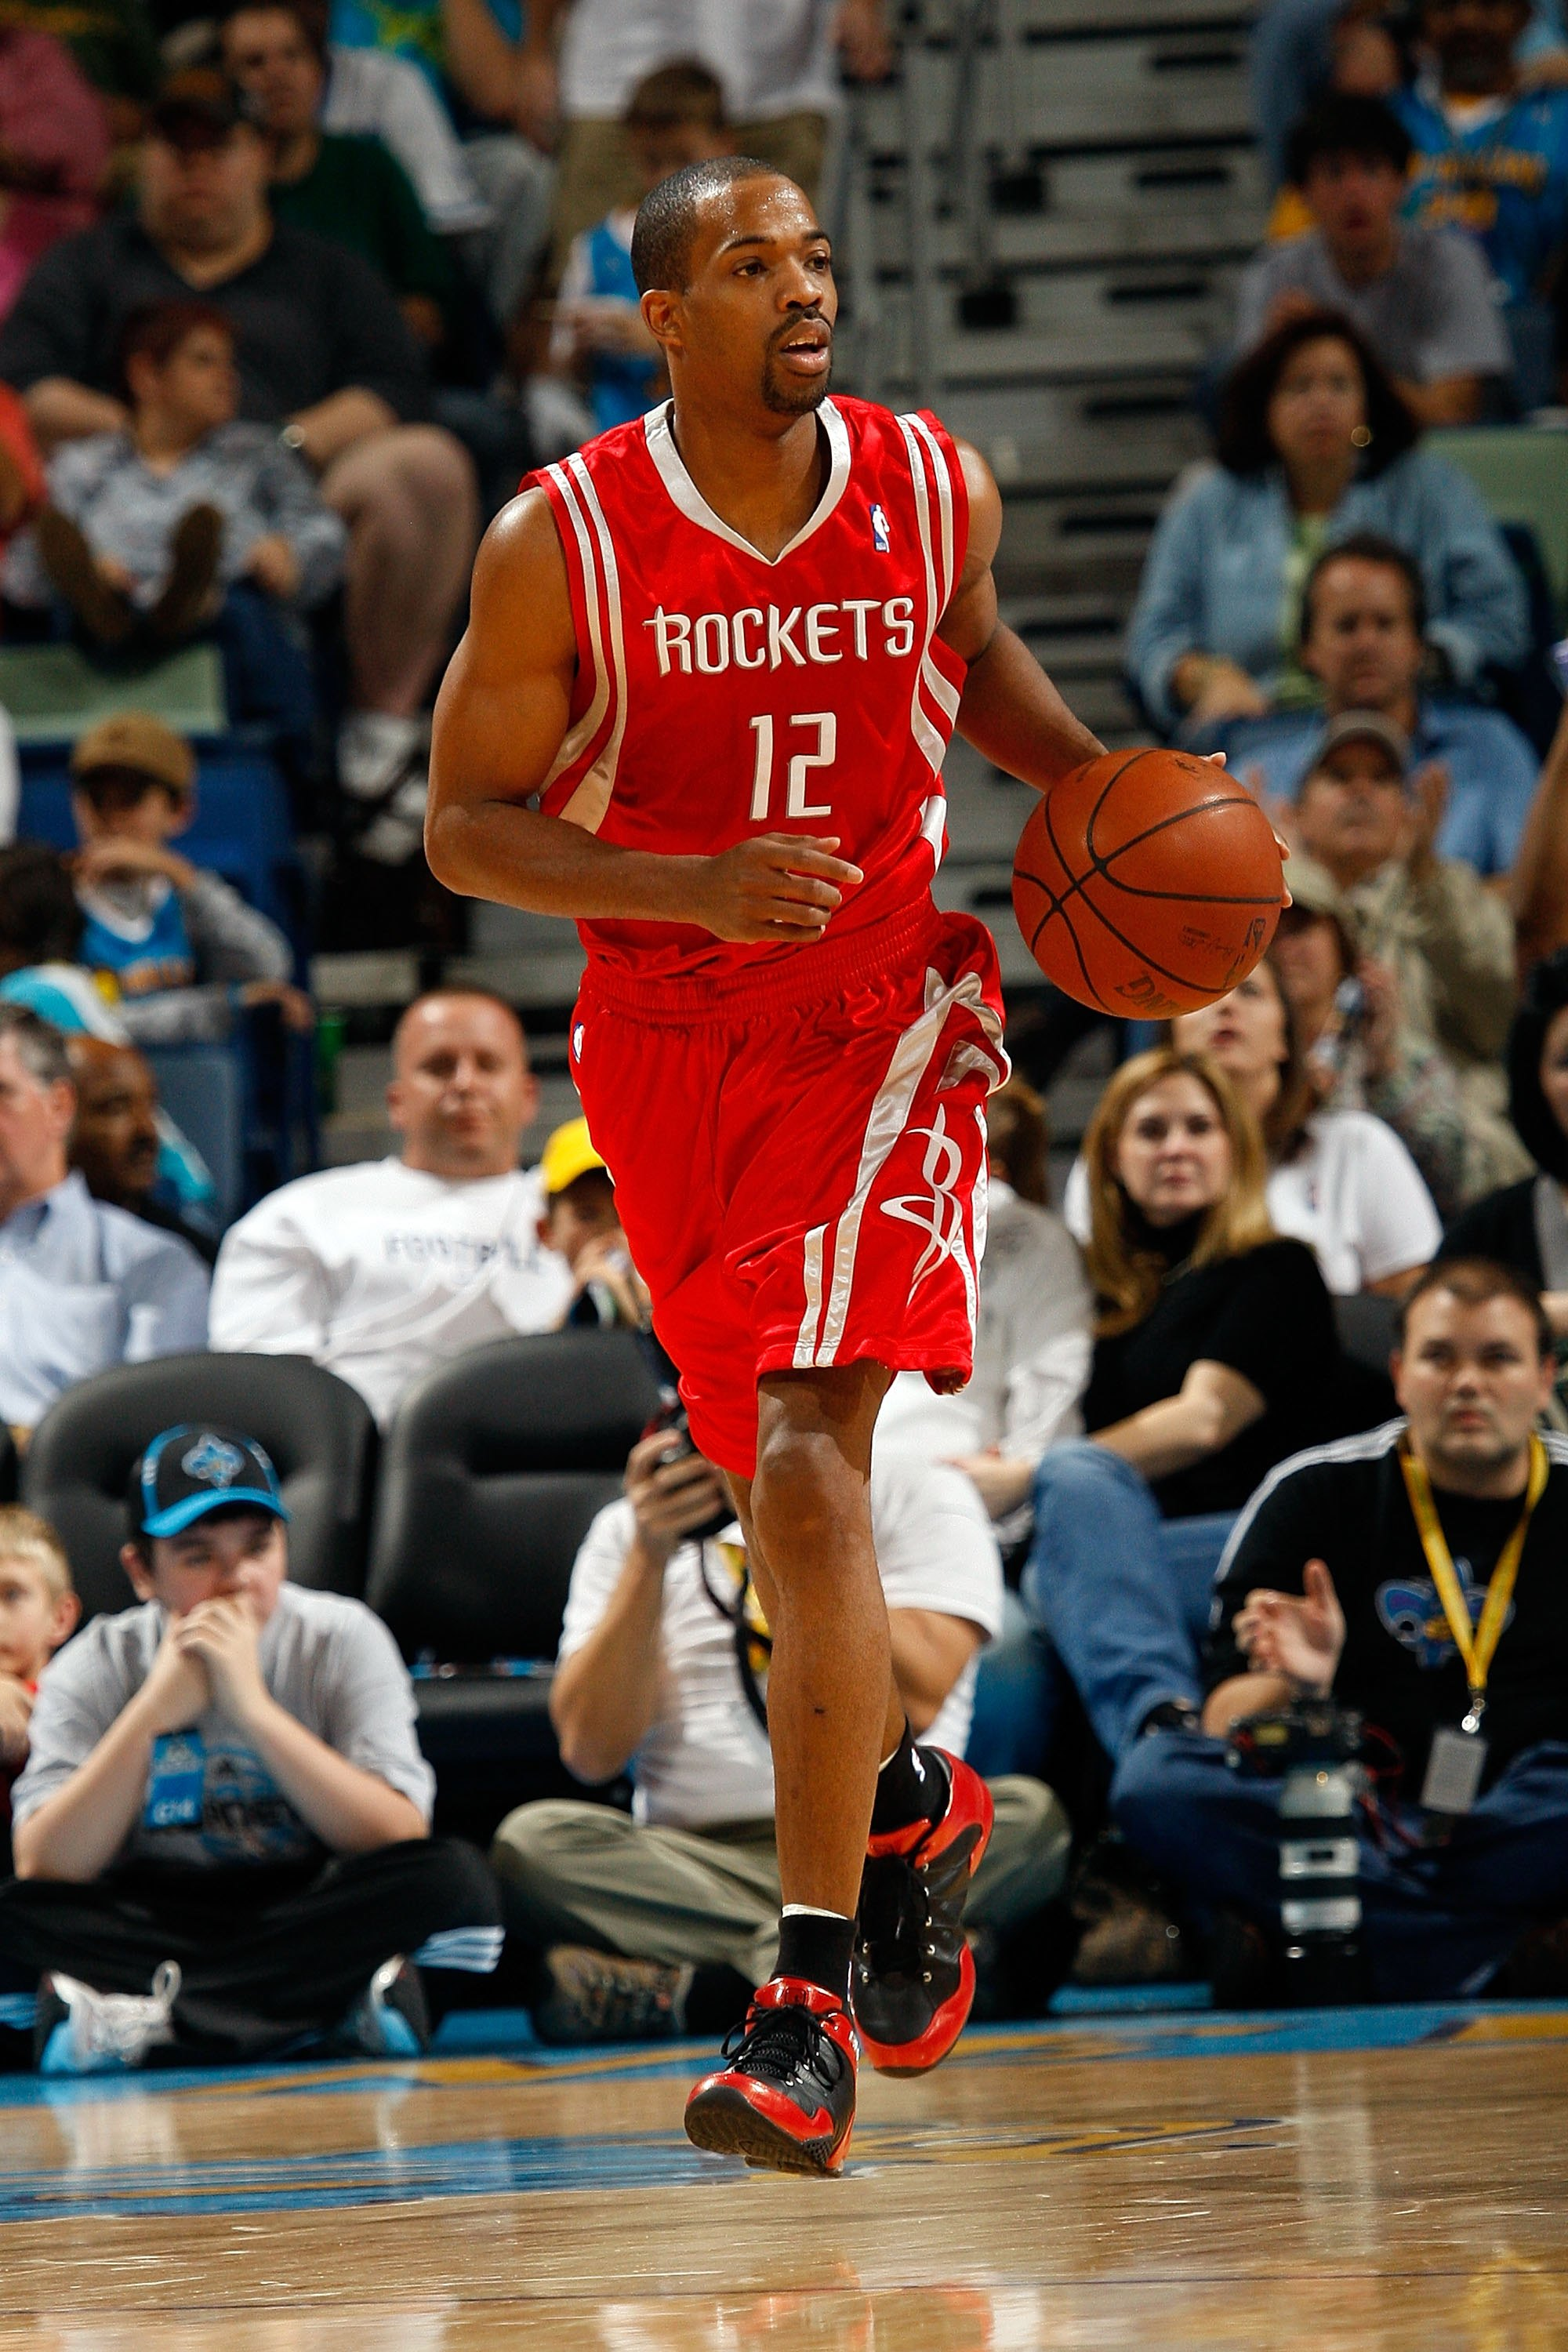 NEW ORLEANS - DECEMBER 26:  Rafer Alston #12 of the Houston Rockets dribbles the ball during the game against the New Orleans Hornets on December 26, 2008 at the New Orleans Arena in New Orleans, Louisiana.  NOTE TO USER: User expressly acknowledges and a